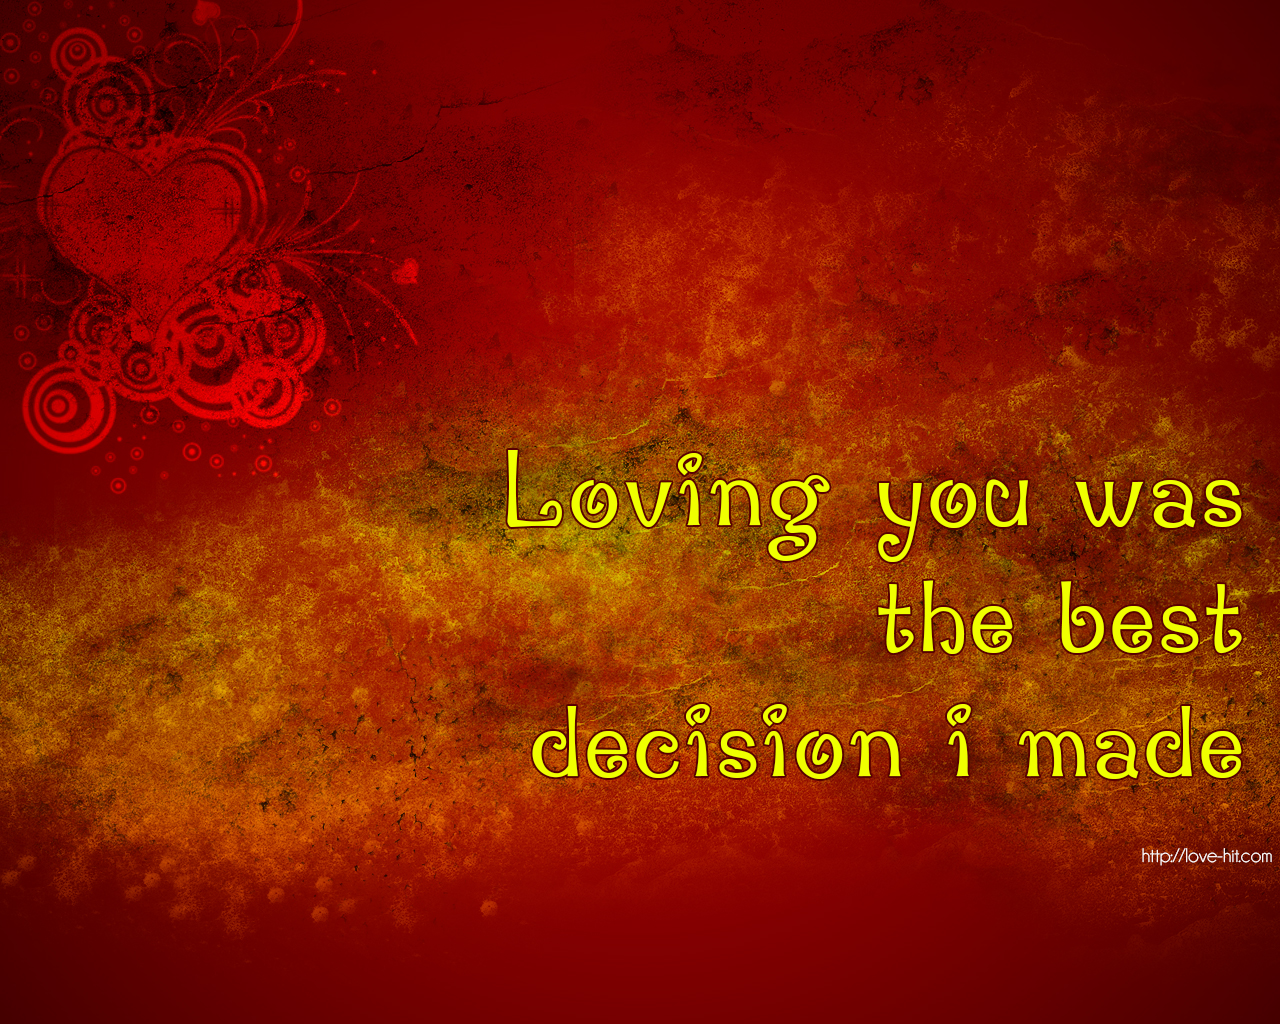 Loving you was the best decision i made